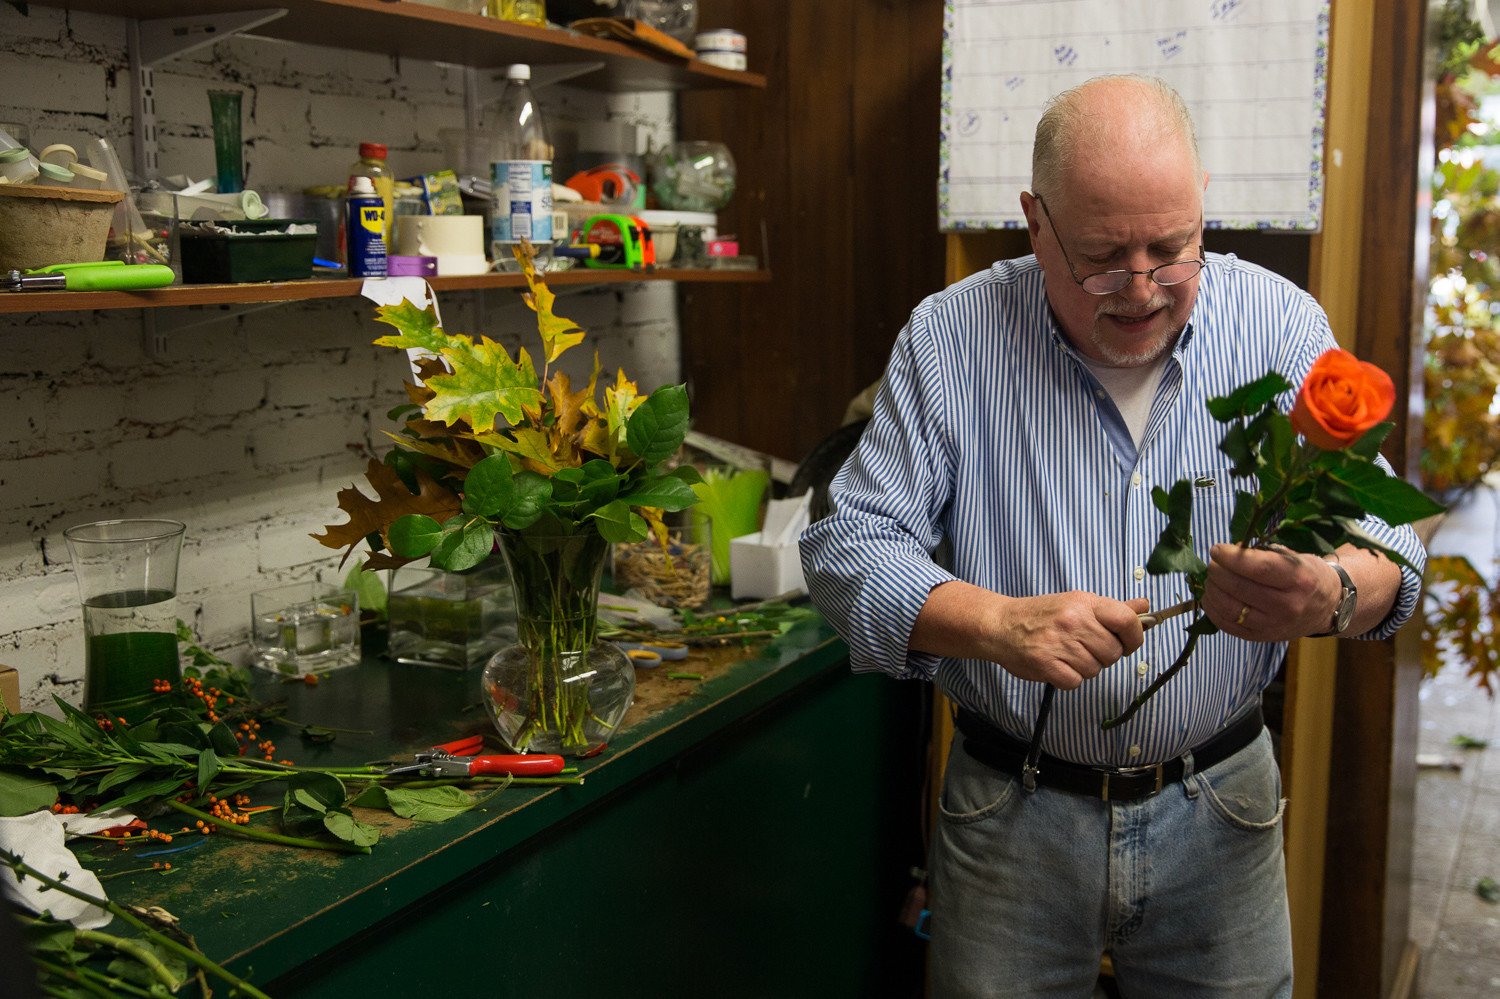 John McKeon, owner of John's Botany Bay Florist, removes leaves and thorns from a rose in the back of his Riverdale Avenue shop. Originally from Washington Heights, McKeon has worked at the shop for 25 years, owning it for the last 20.